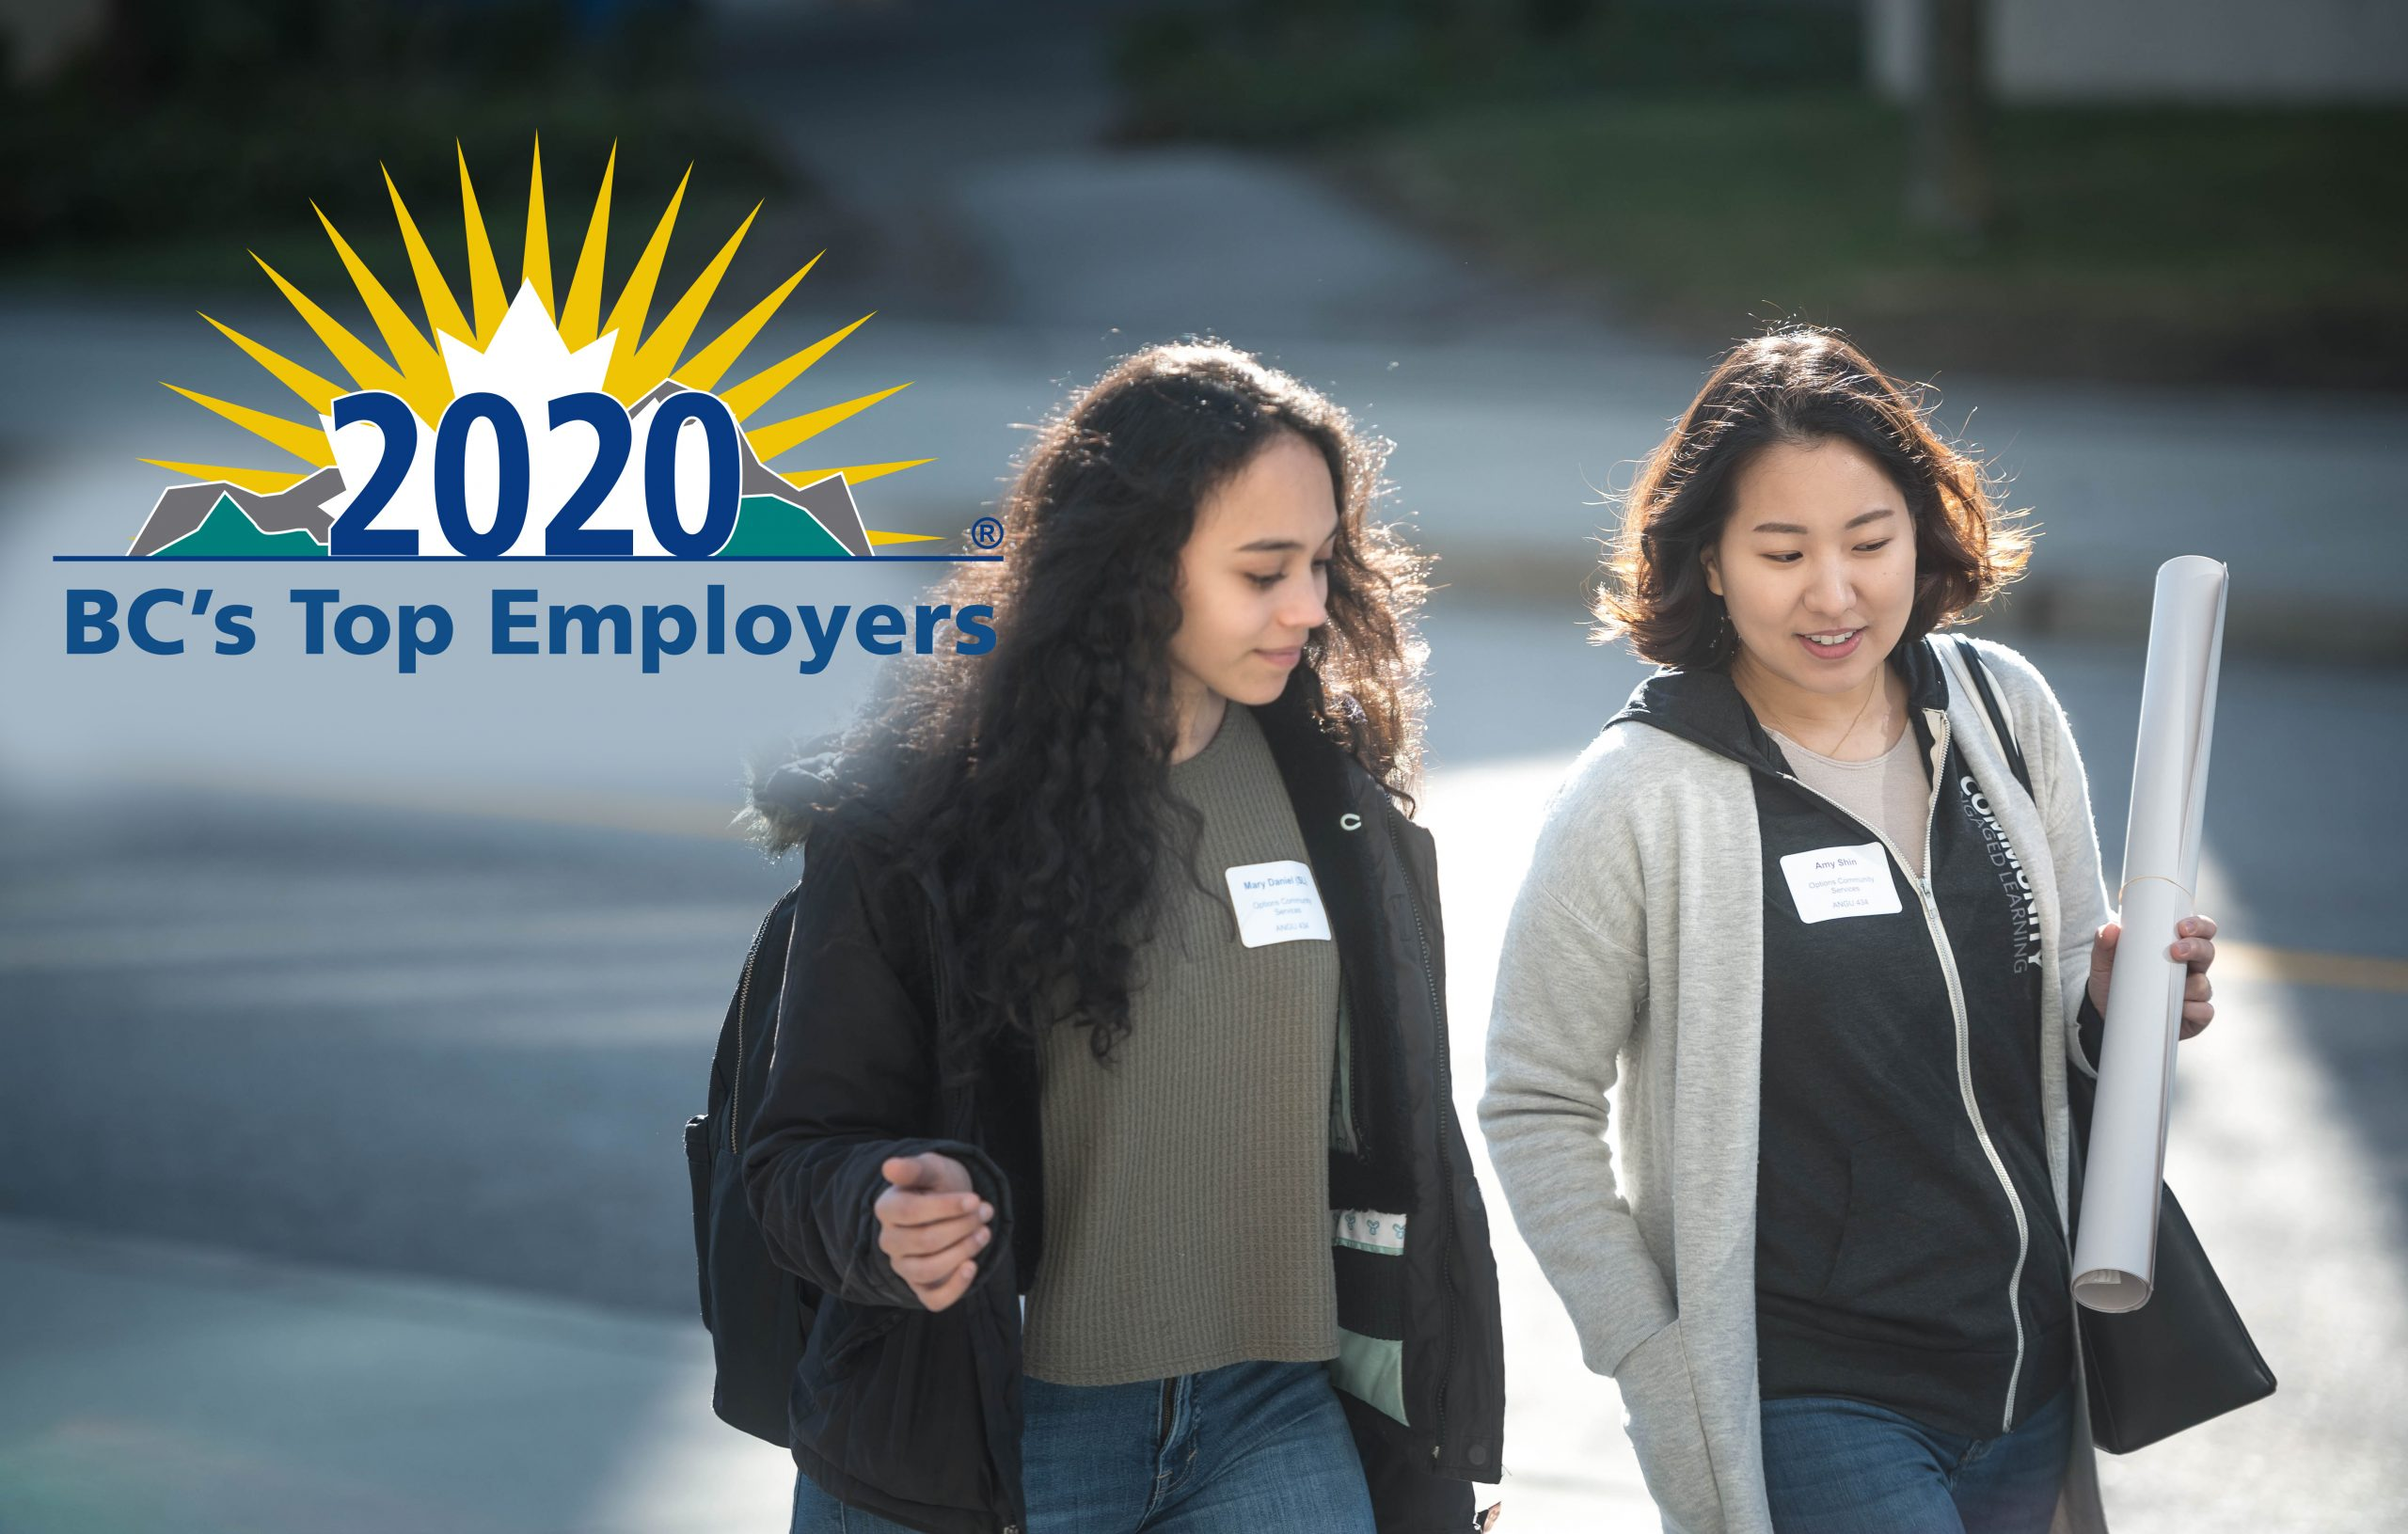 BC's Top Employer 2020